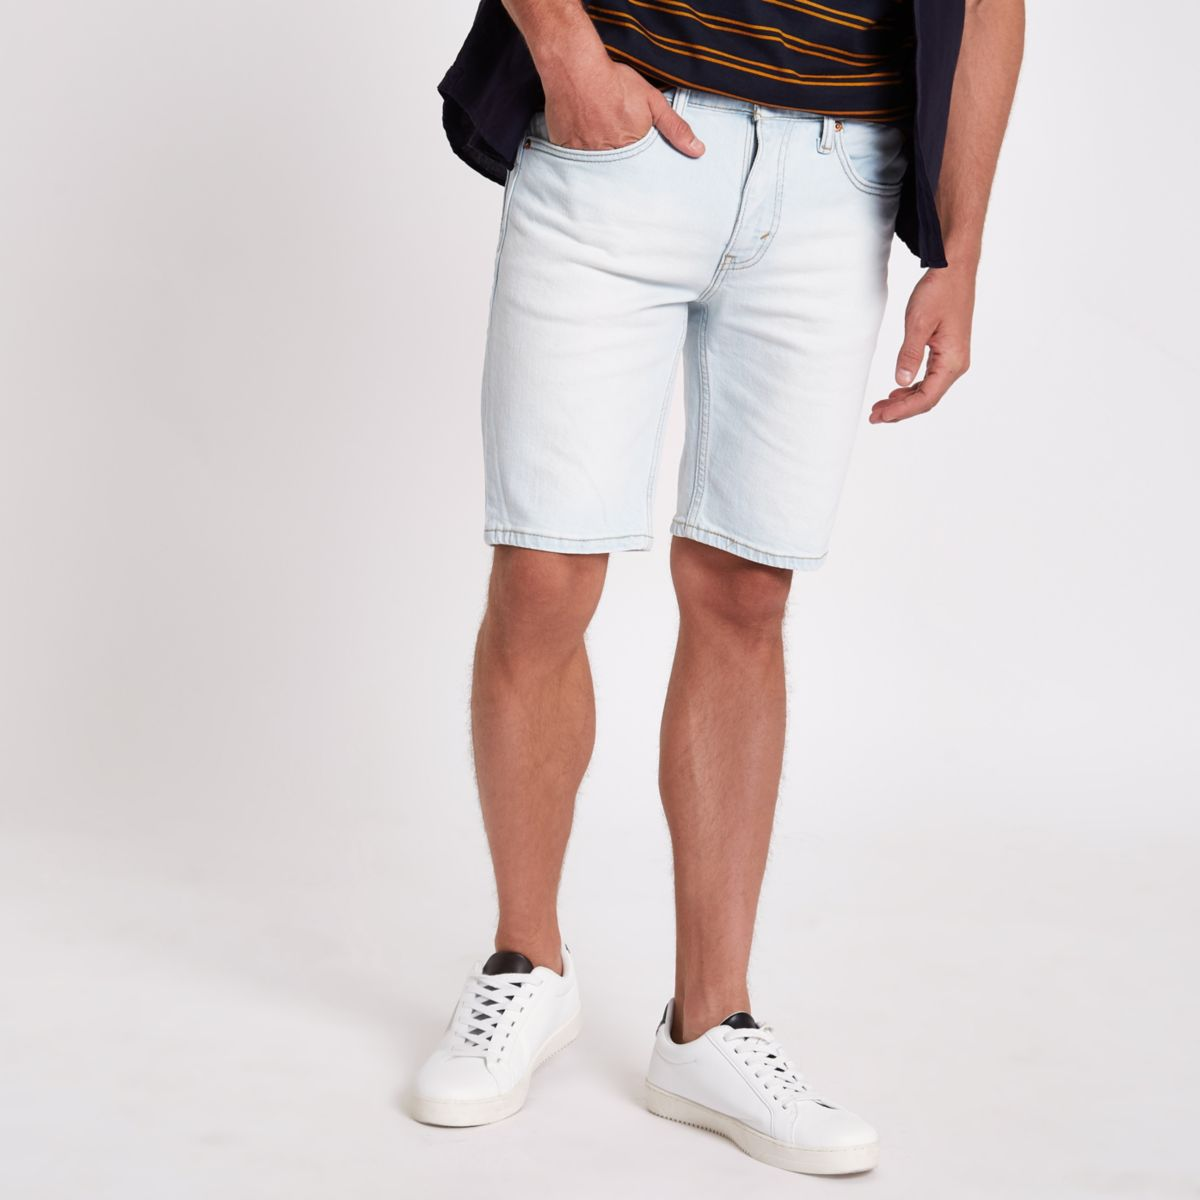 River Island Mens Levis Blue 511 slim fit denim shorts Levi's Buy Cheap The Cheapest Comfortable dkk0sdc